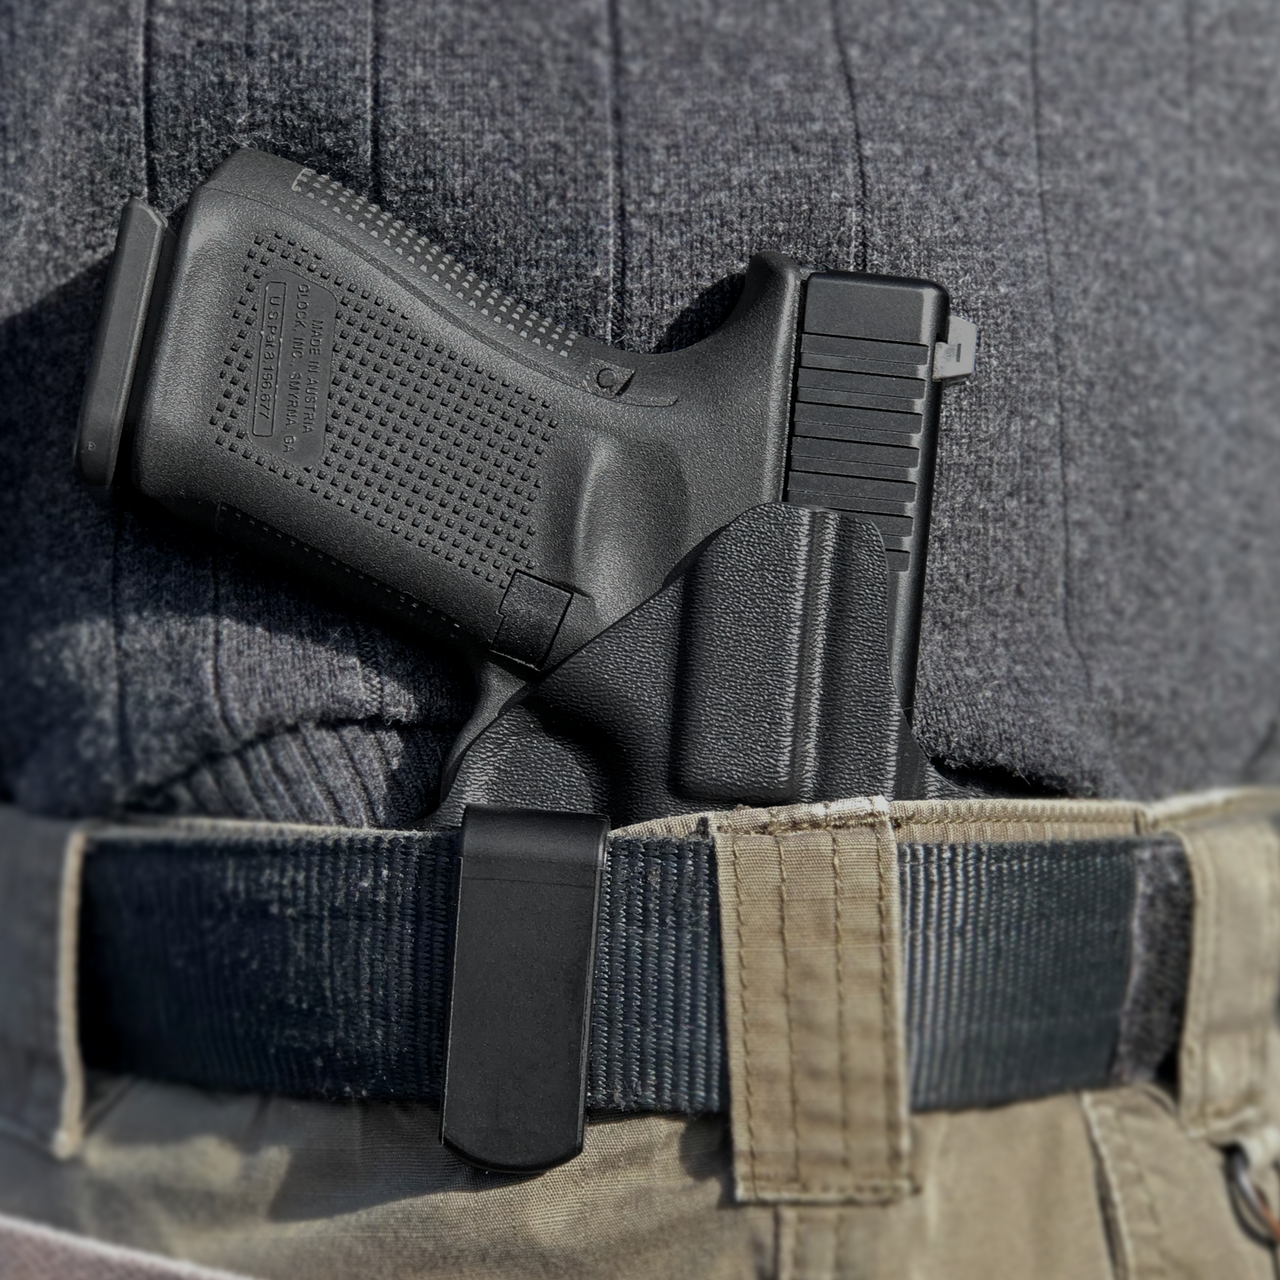 Concealed Carry Holsters (IWB)